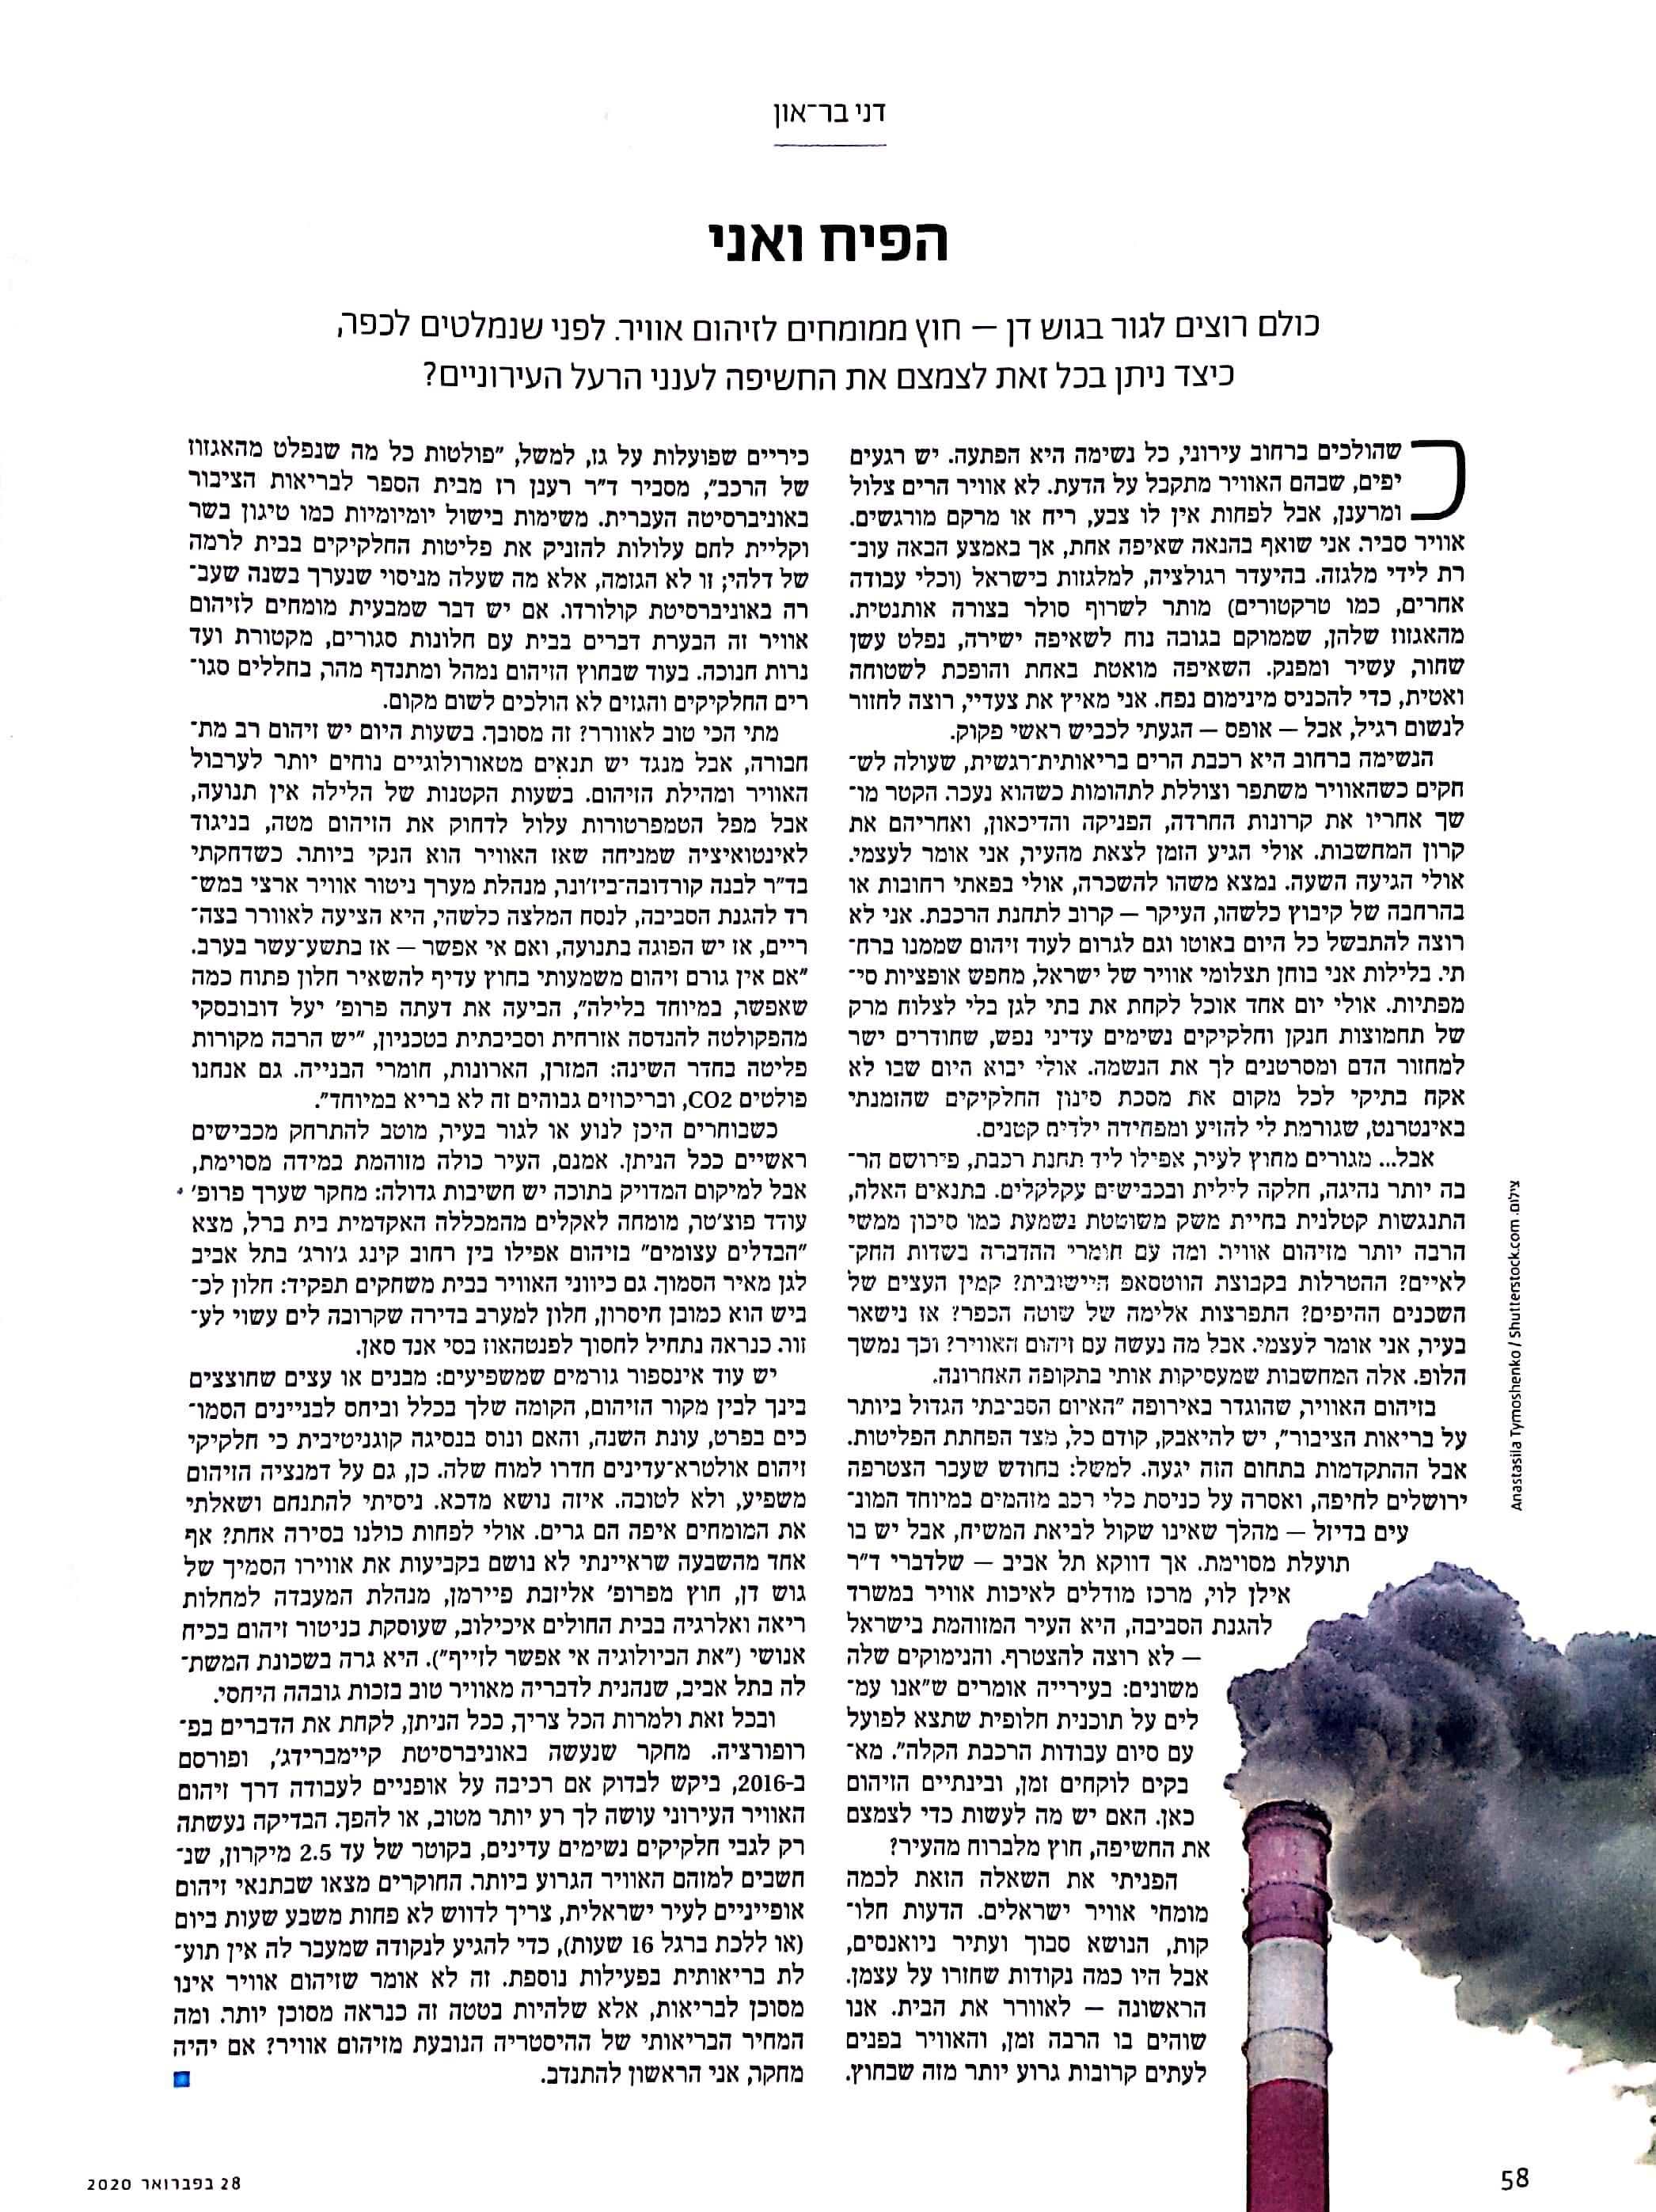 Haaretz article: The smog and I, 26.2.2020